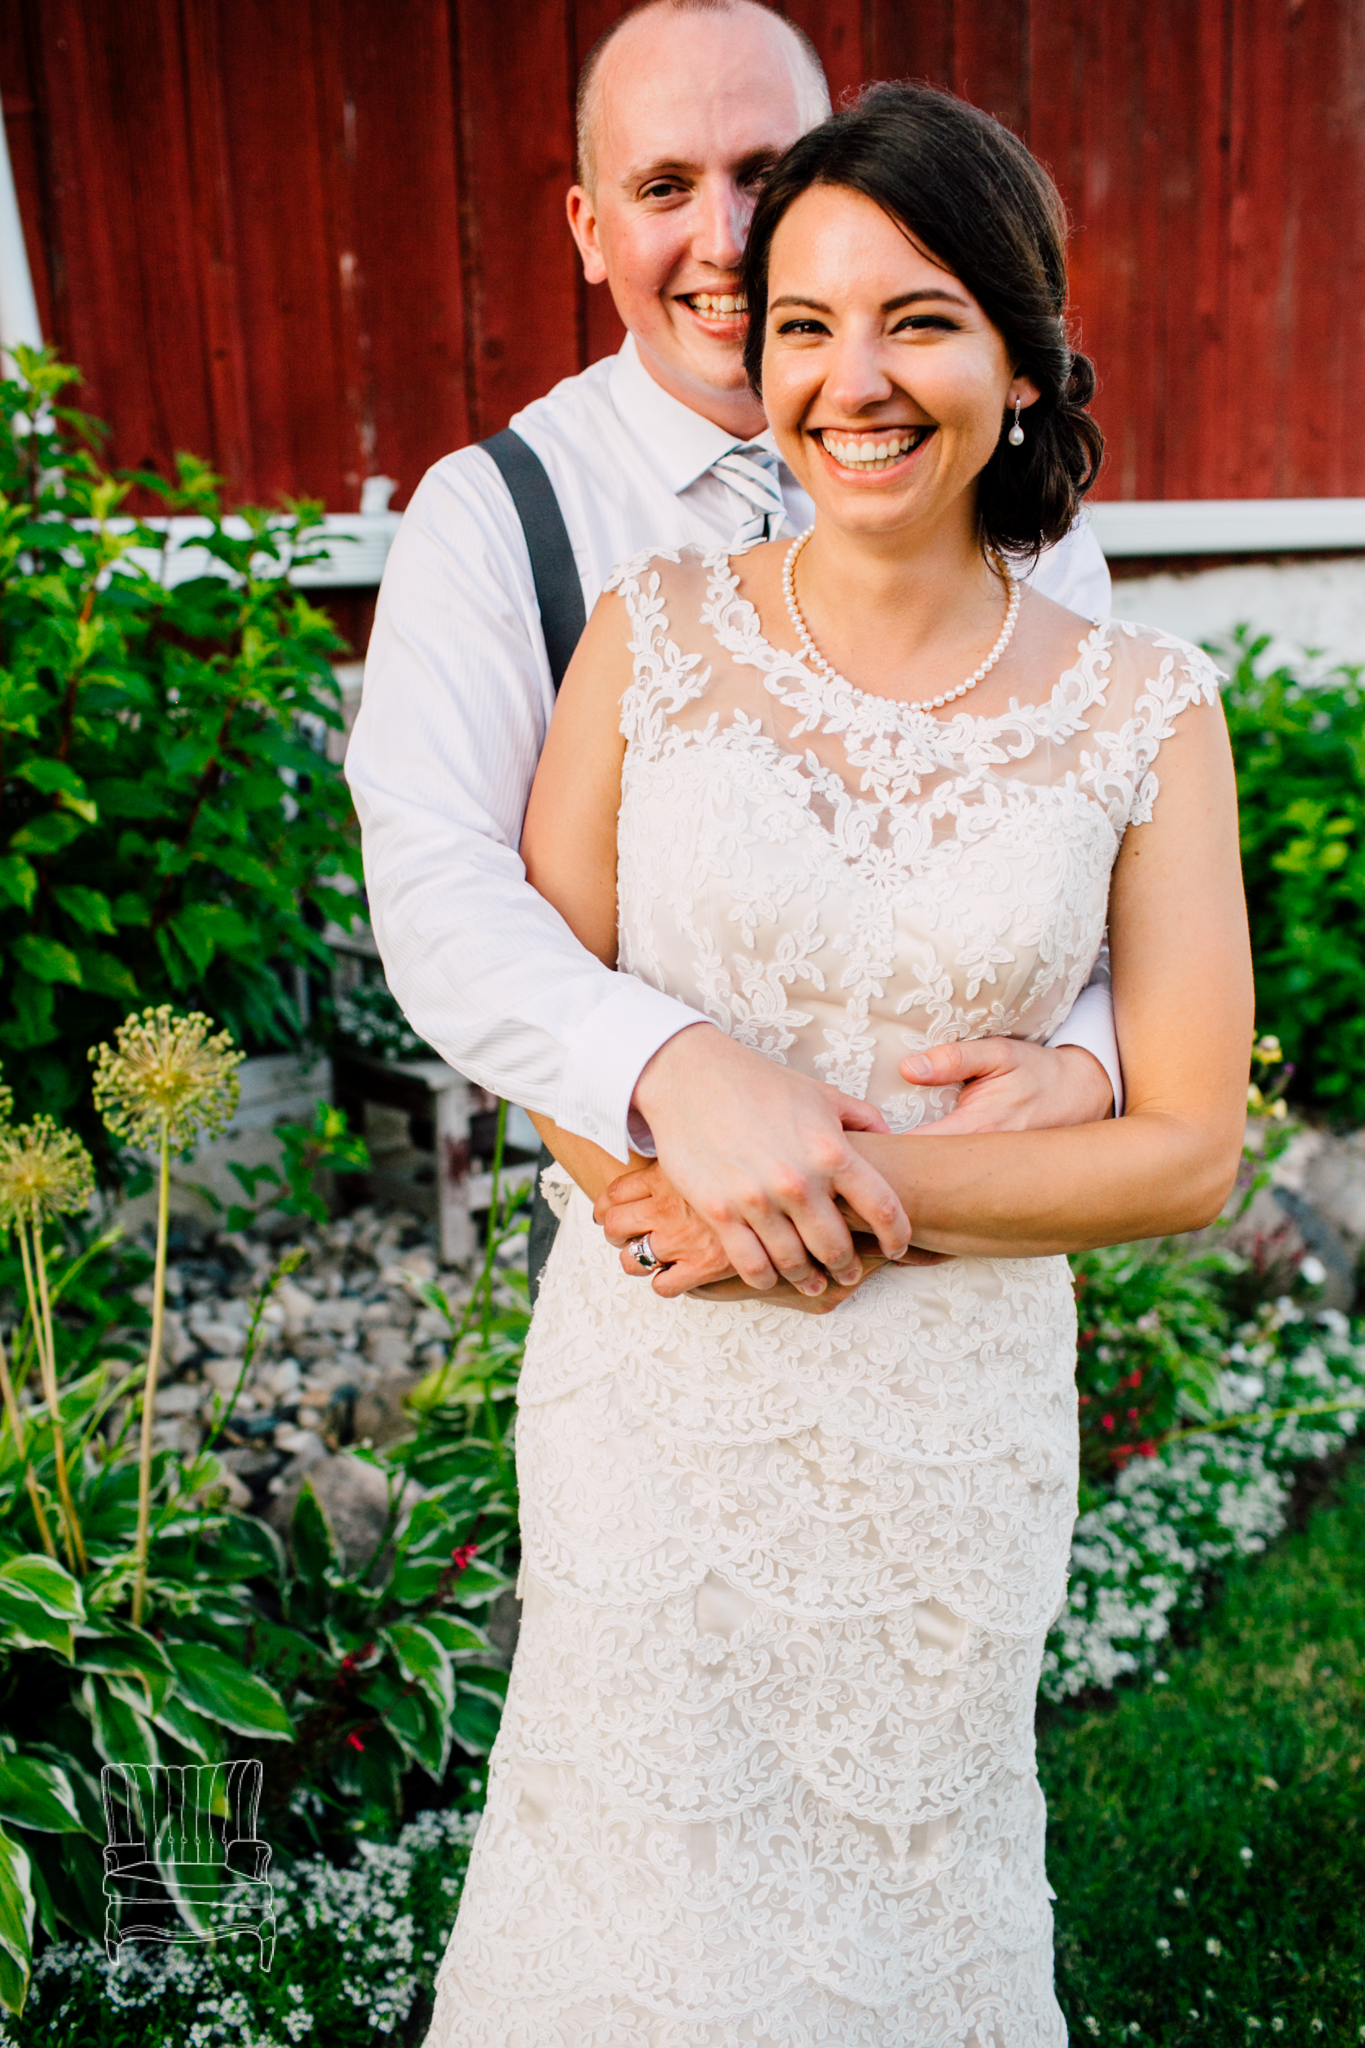 trevor-jenny-wisconsin-wedding-2016-34.jpg